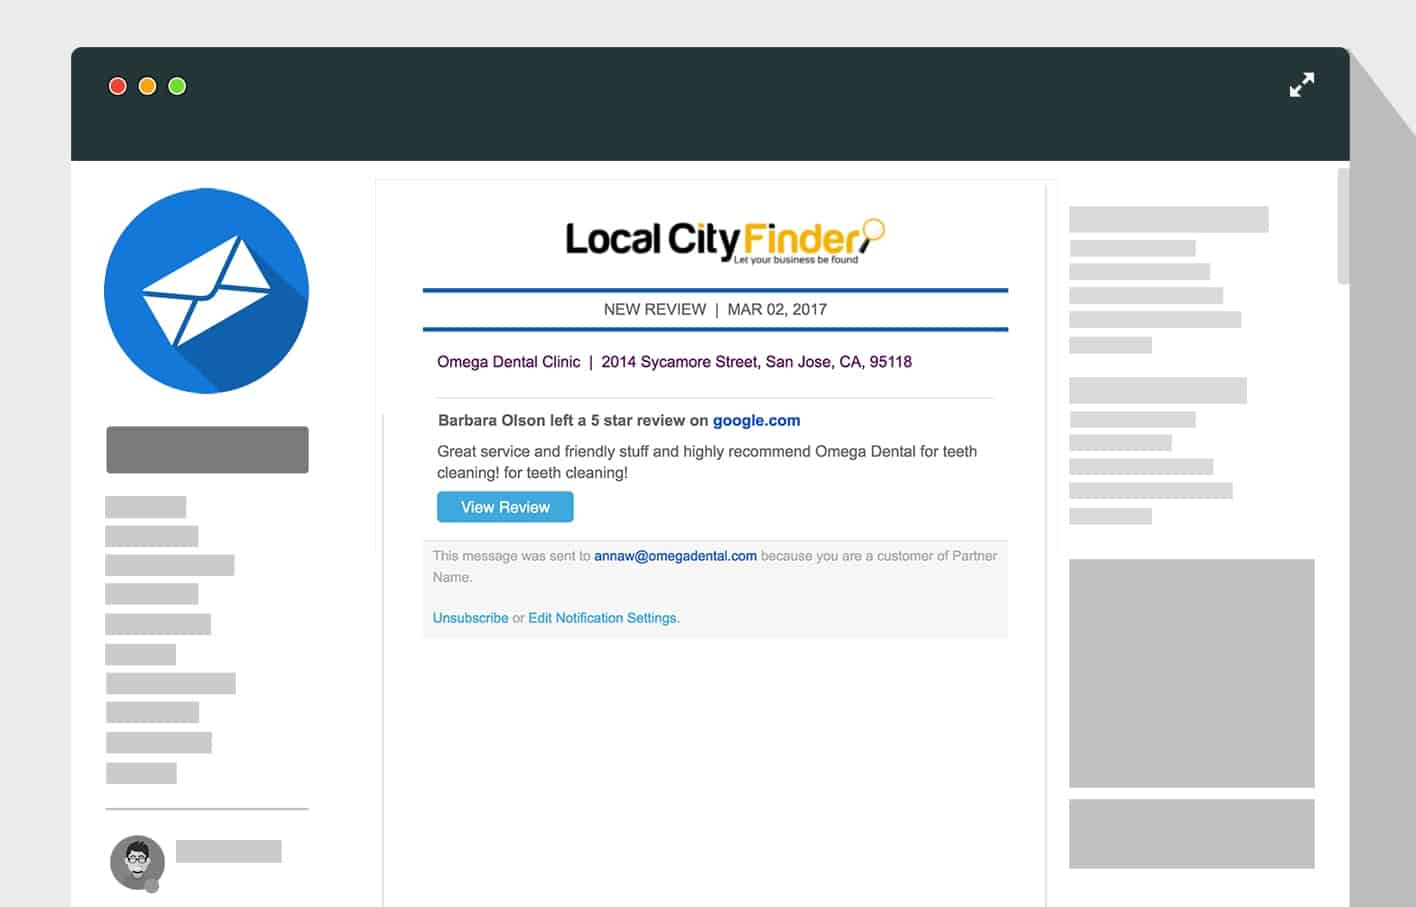 LocalCityFinder-reputation-new-review-email